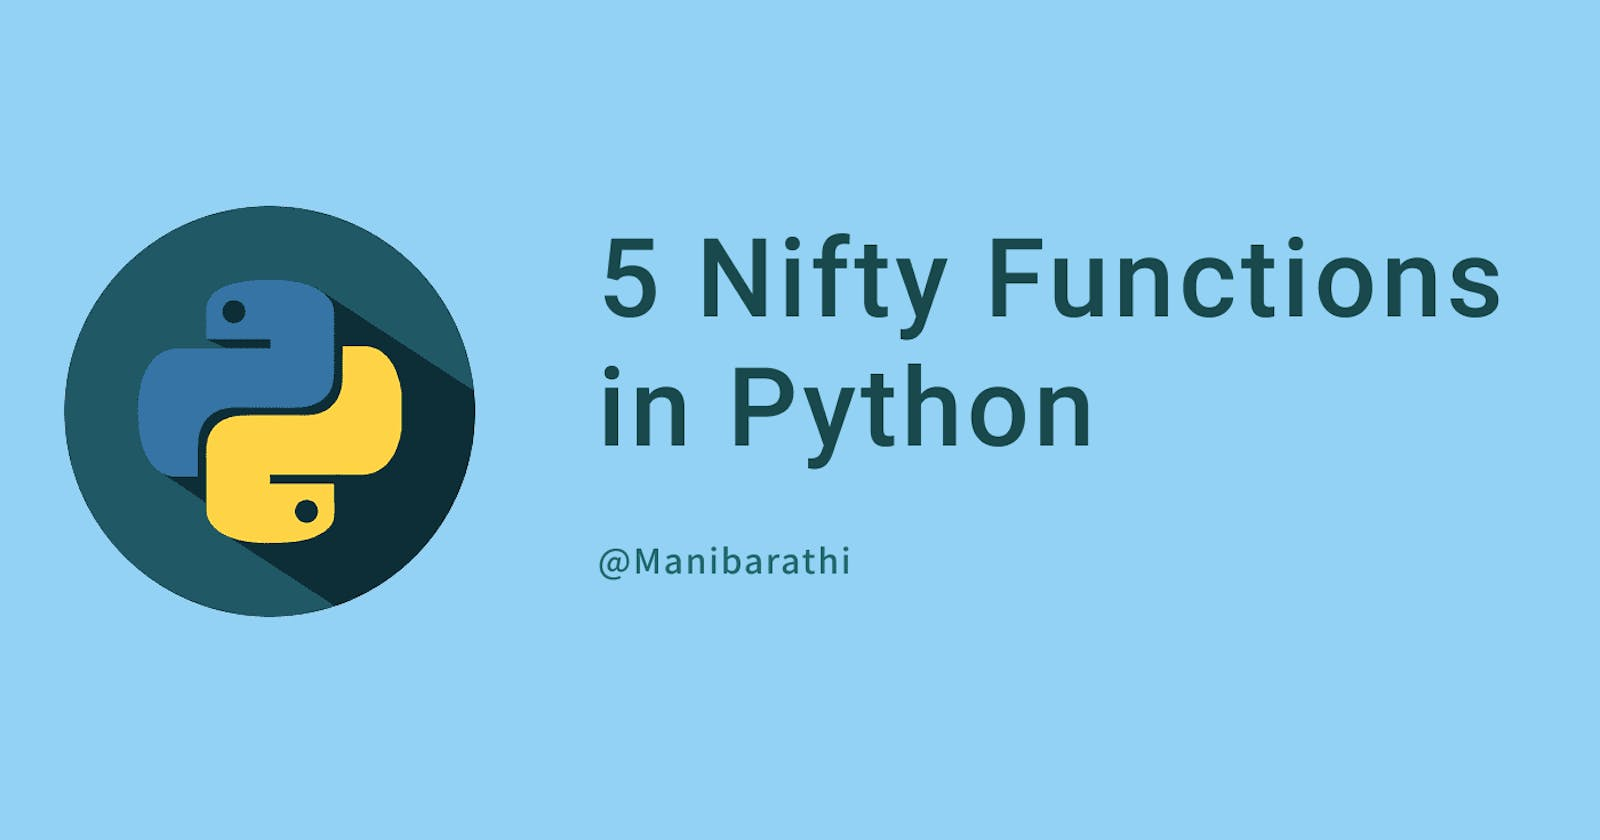 5 Nifty Functions in Python